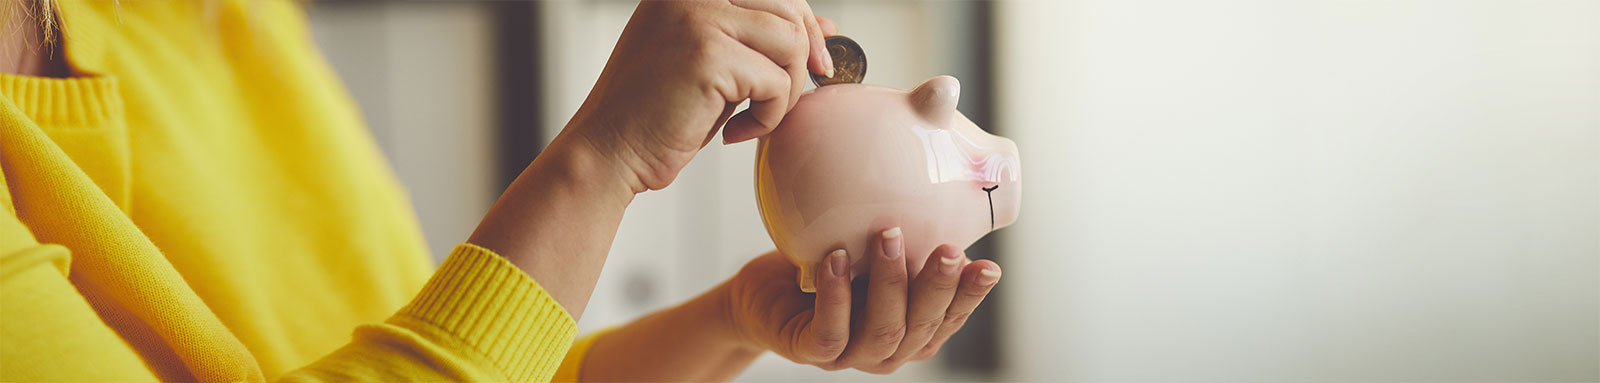 Woman putting coin in a pink piggy bank